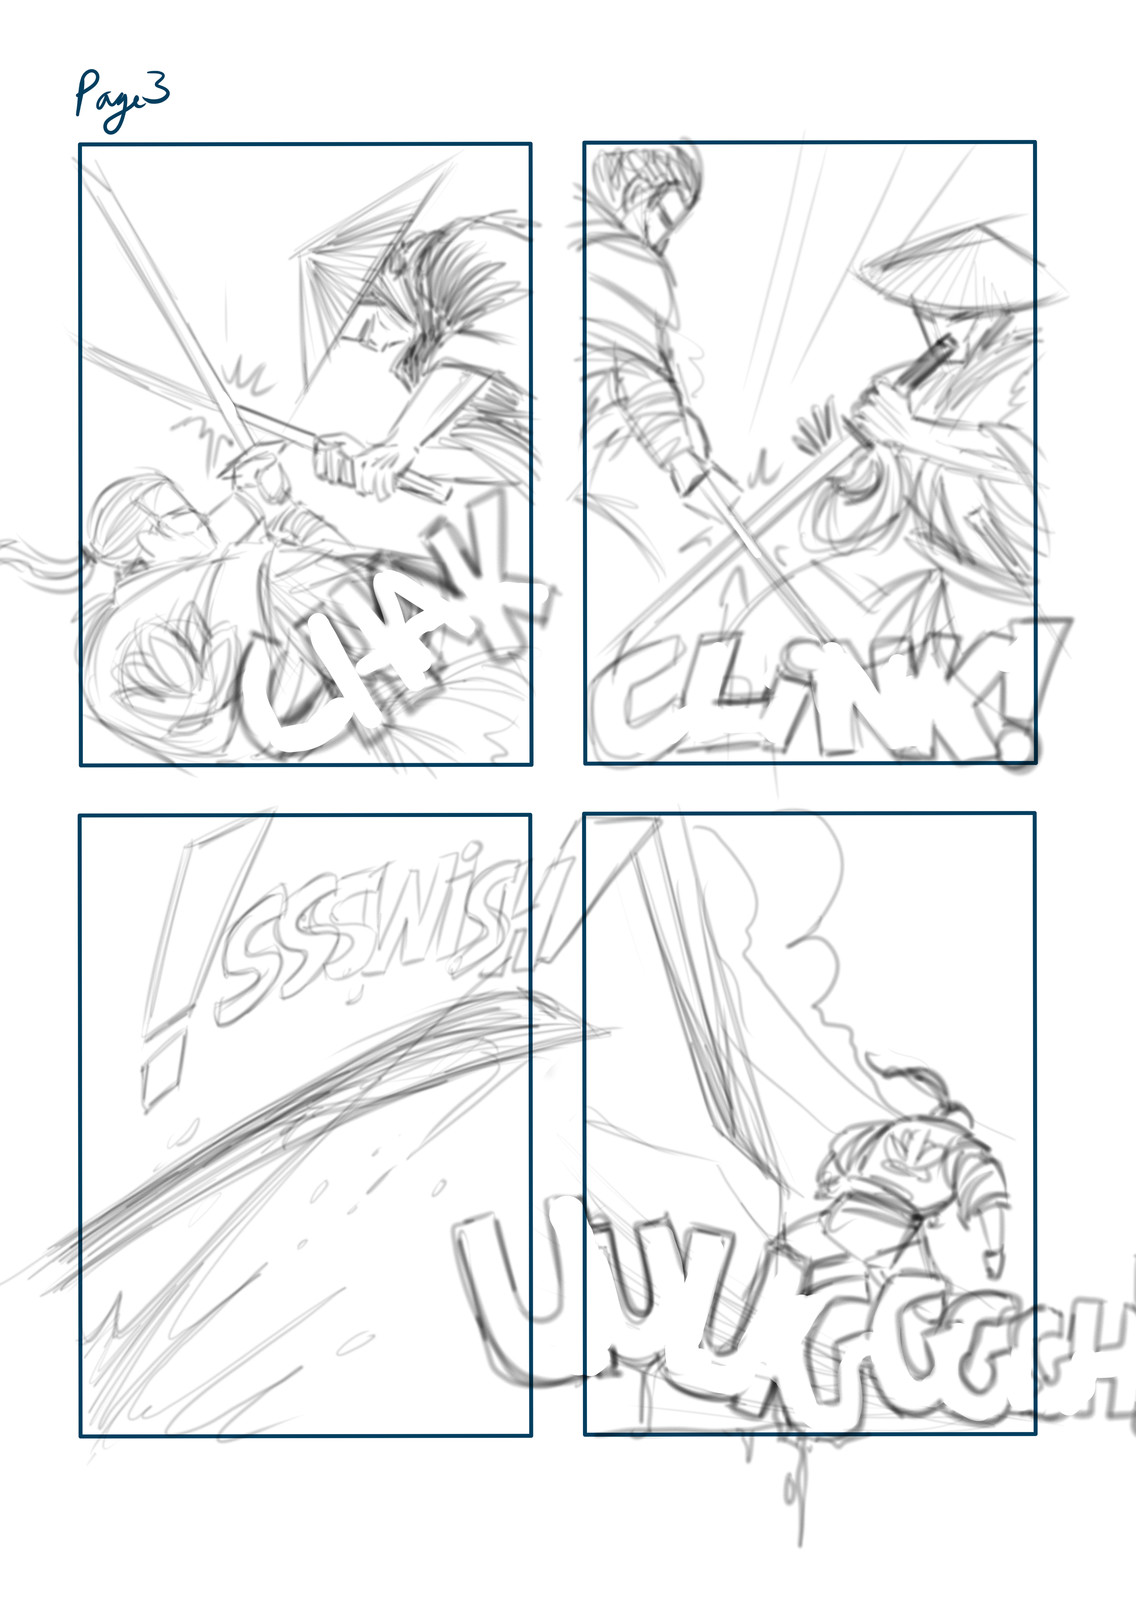 Pencil layout for Page 03, using Mischief